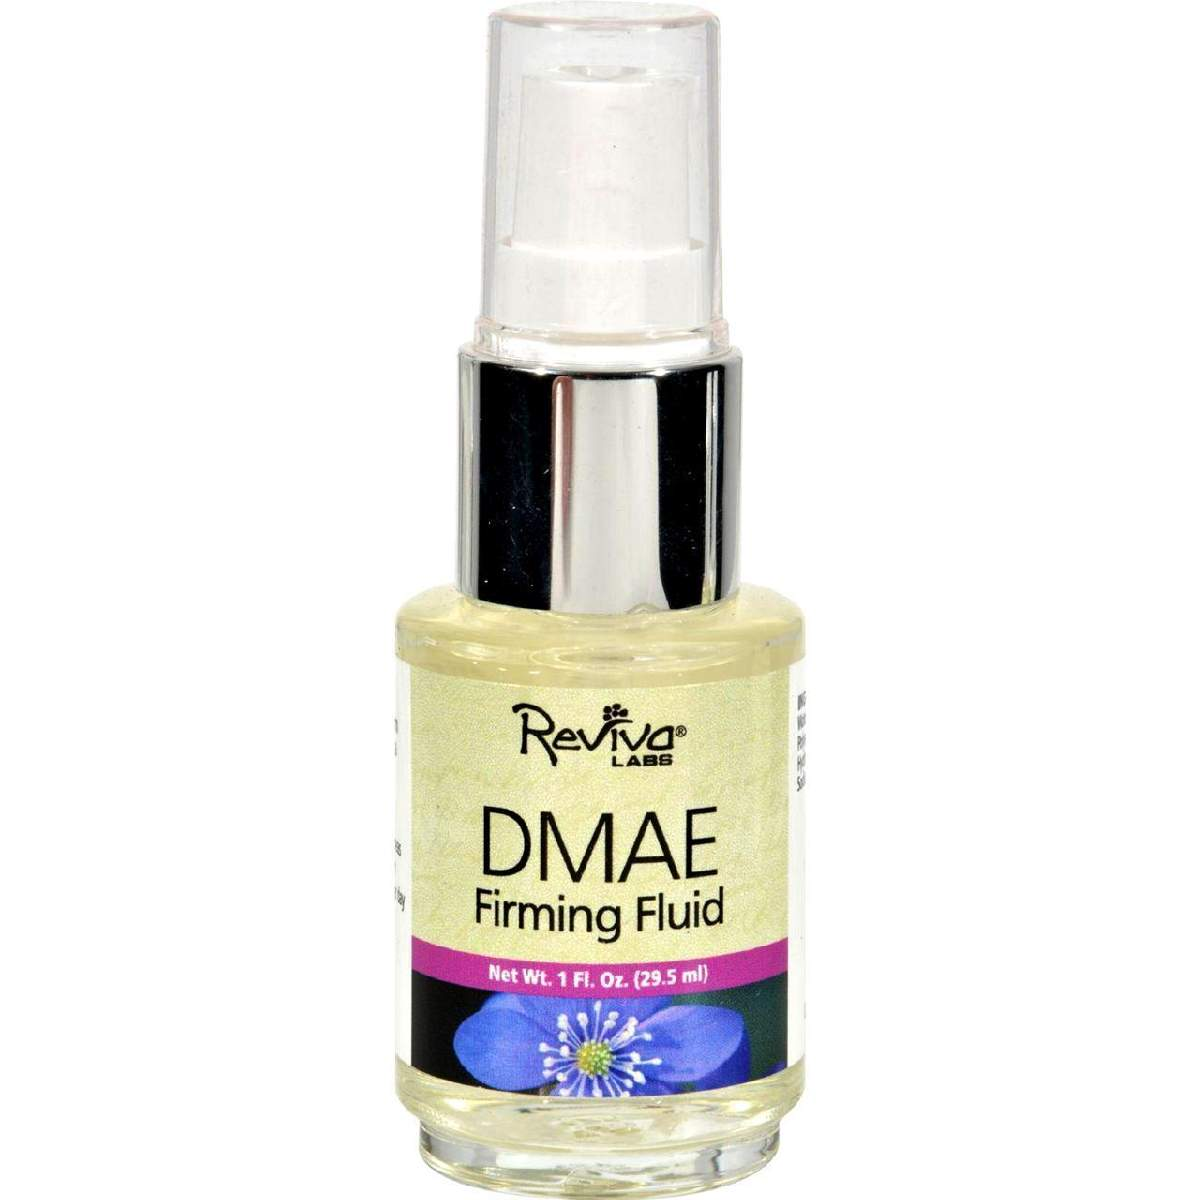 Reviva Labs Dmae Firming Fluid - 1 Fl Oz